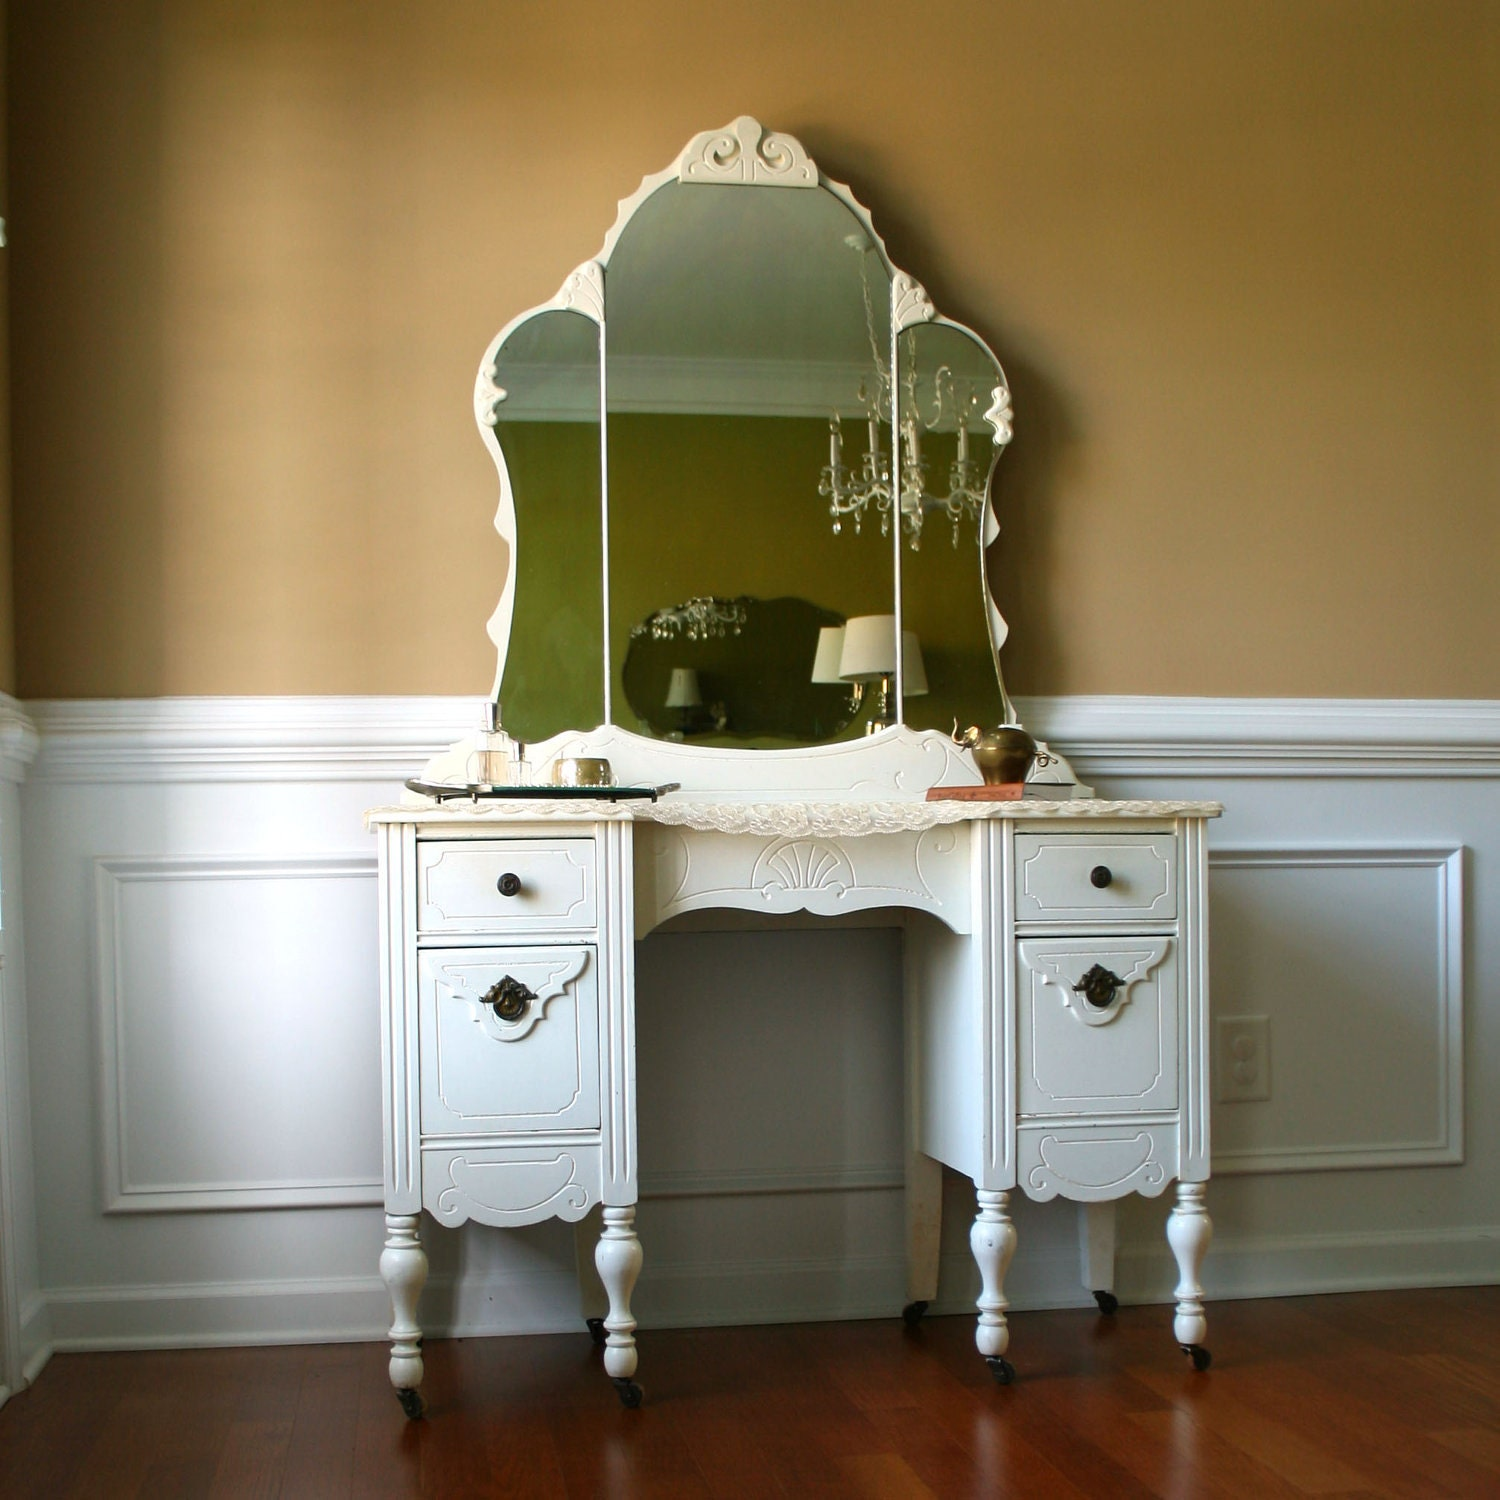 Antique dressing table with mirror - Vanity Desk White Dressers Mirrors Aw412 120 Transitional